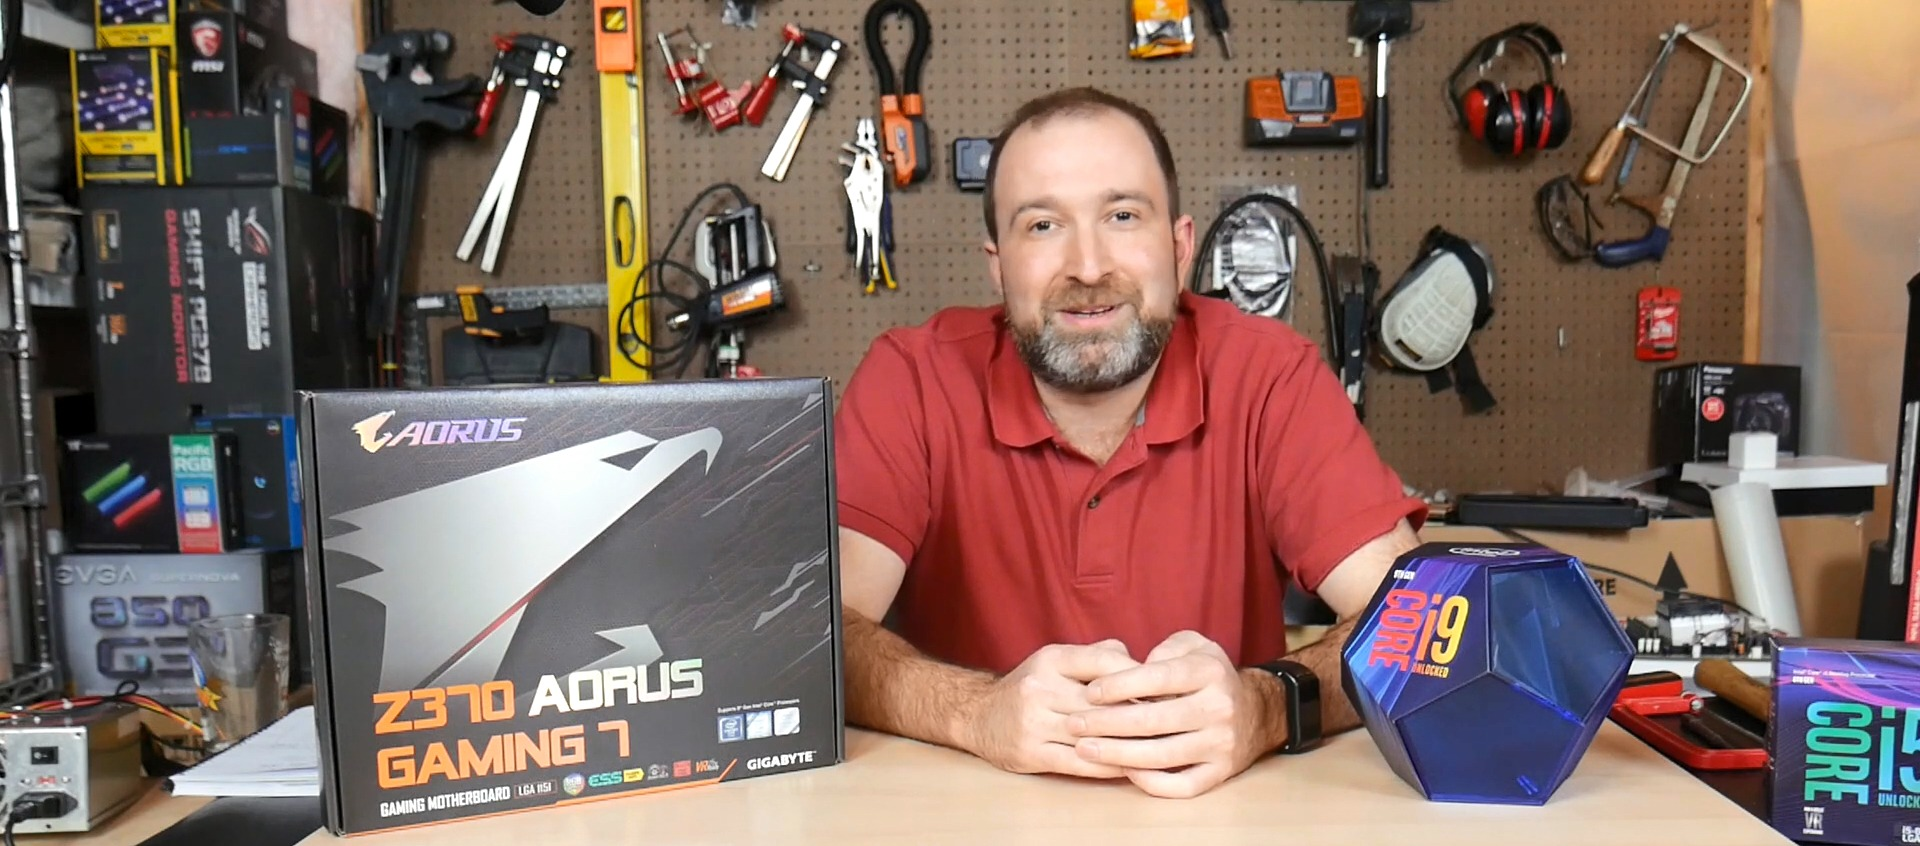 Review: Intel i9-9900K vs.GIGABYTE Z370 AORUS Gaming 7